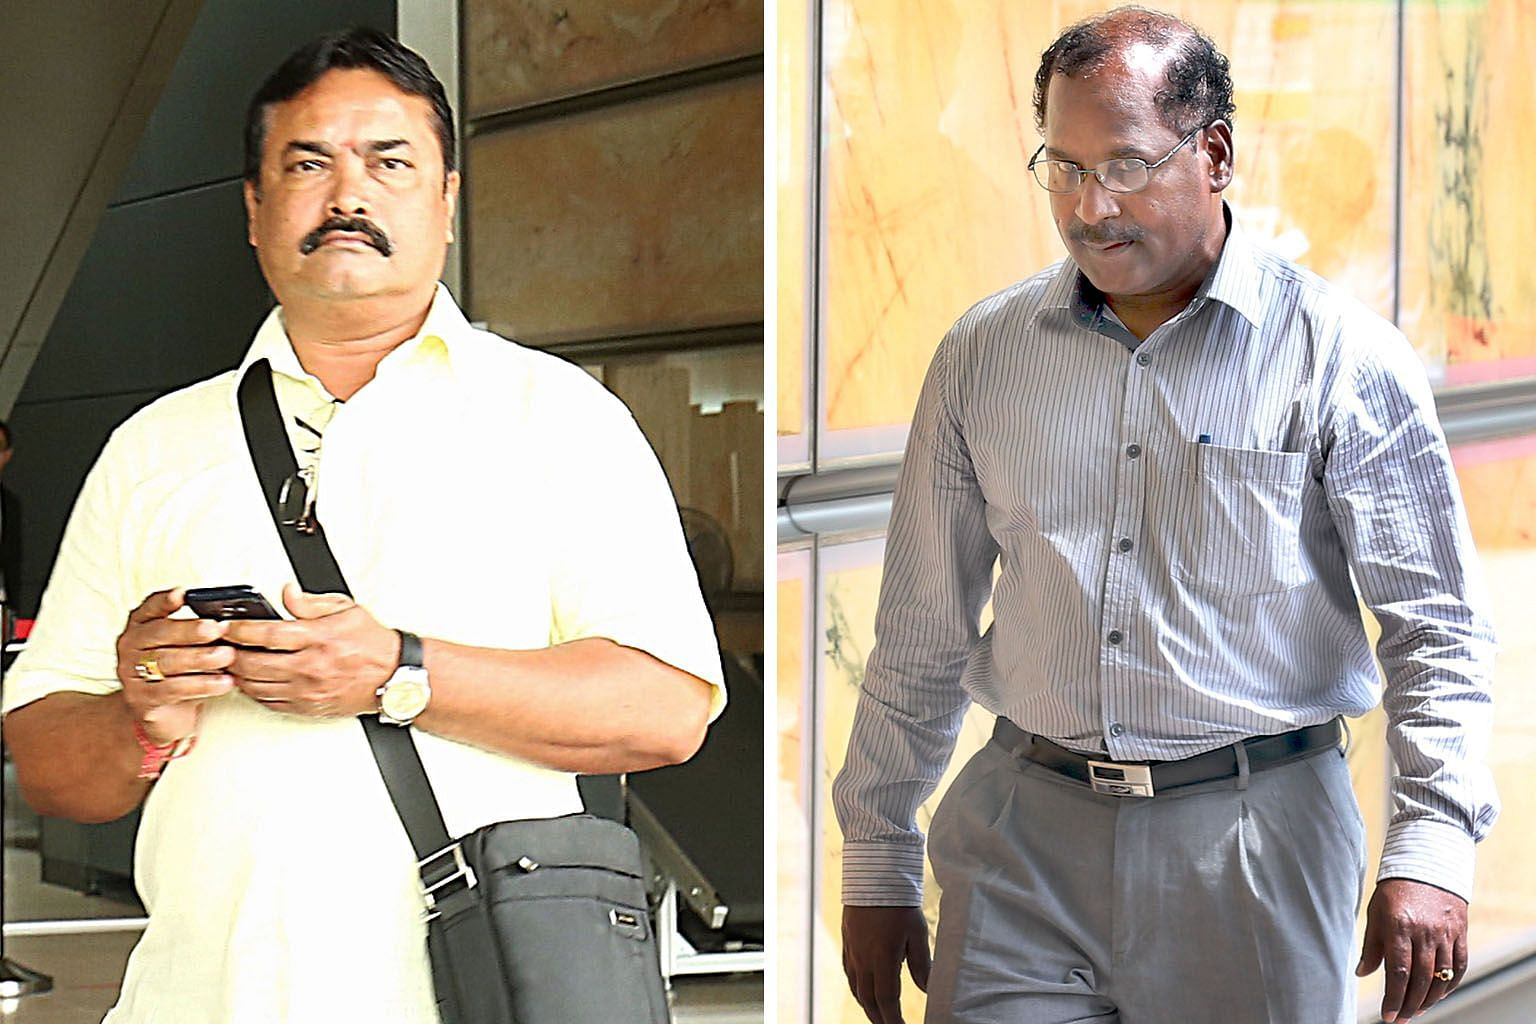 Construction worker Kulandaivelu Malayaperumal (far left) and Mr Gopal Subramaniam were ordered to return a total of $3 million that the late Dr Freda Paul, who had dementia, had given to them. The money came from the sale proceeds of her Haig Road b